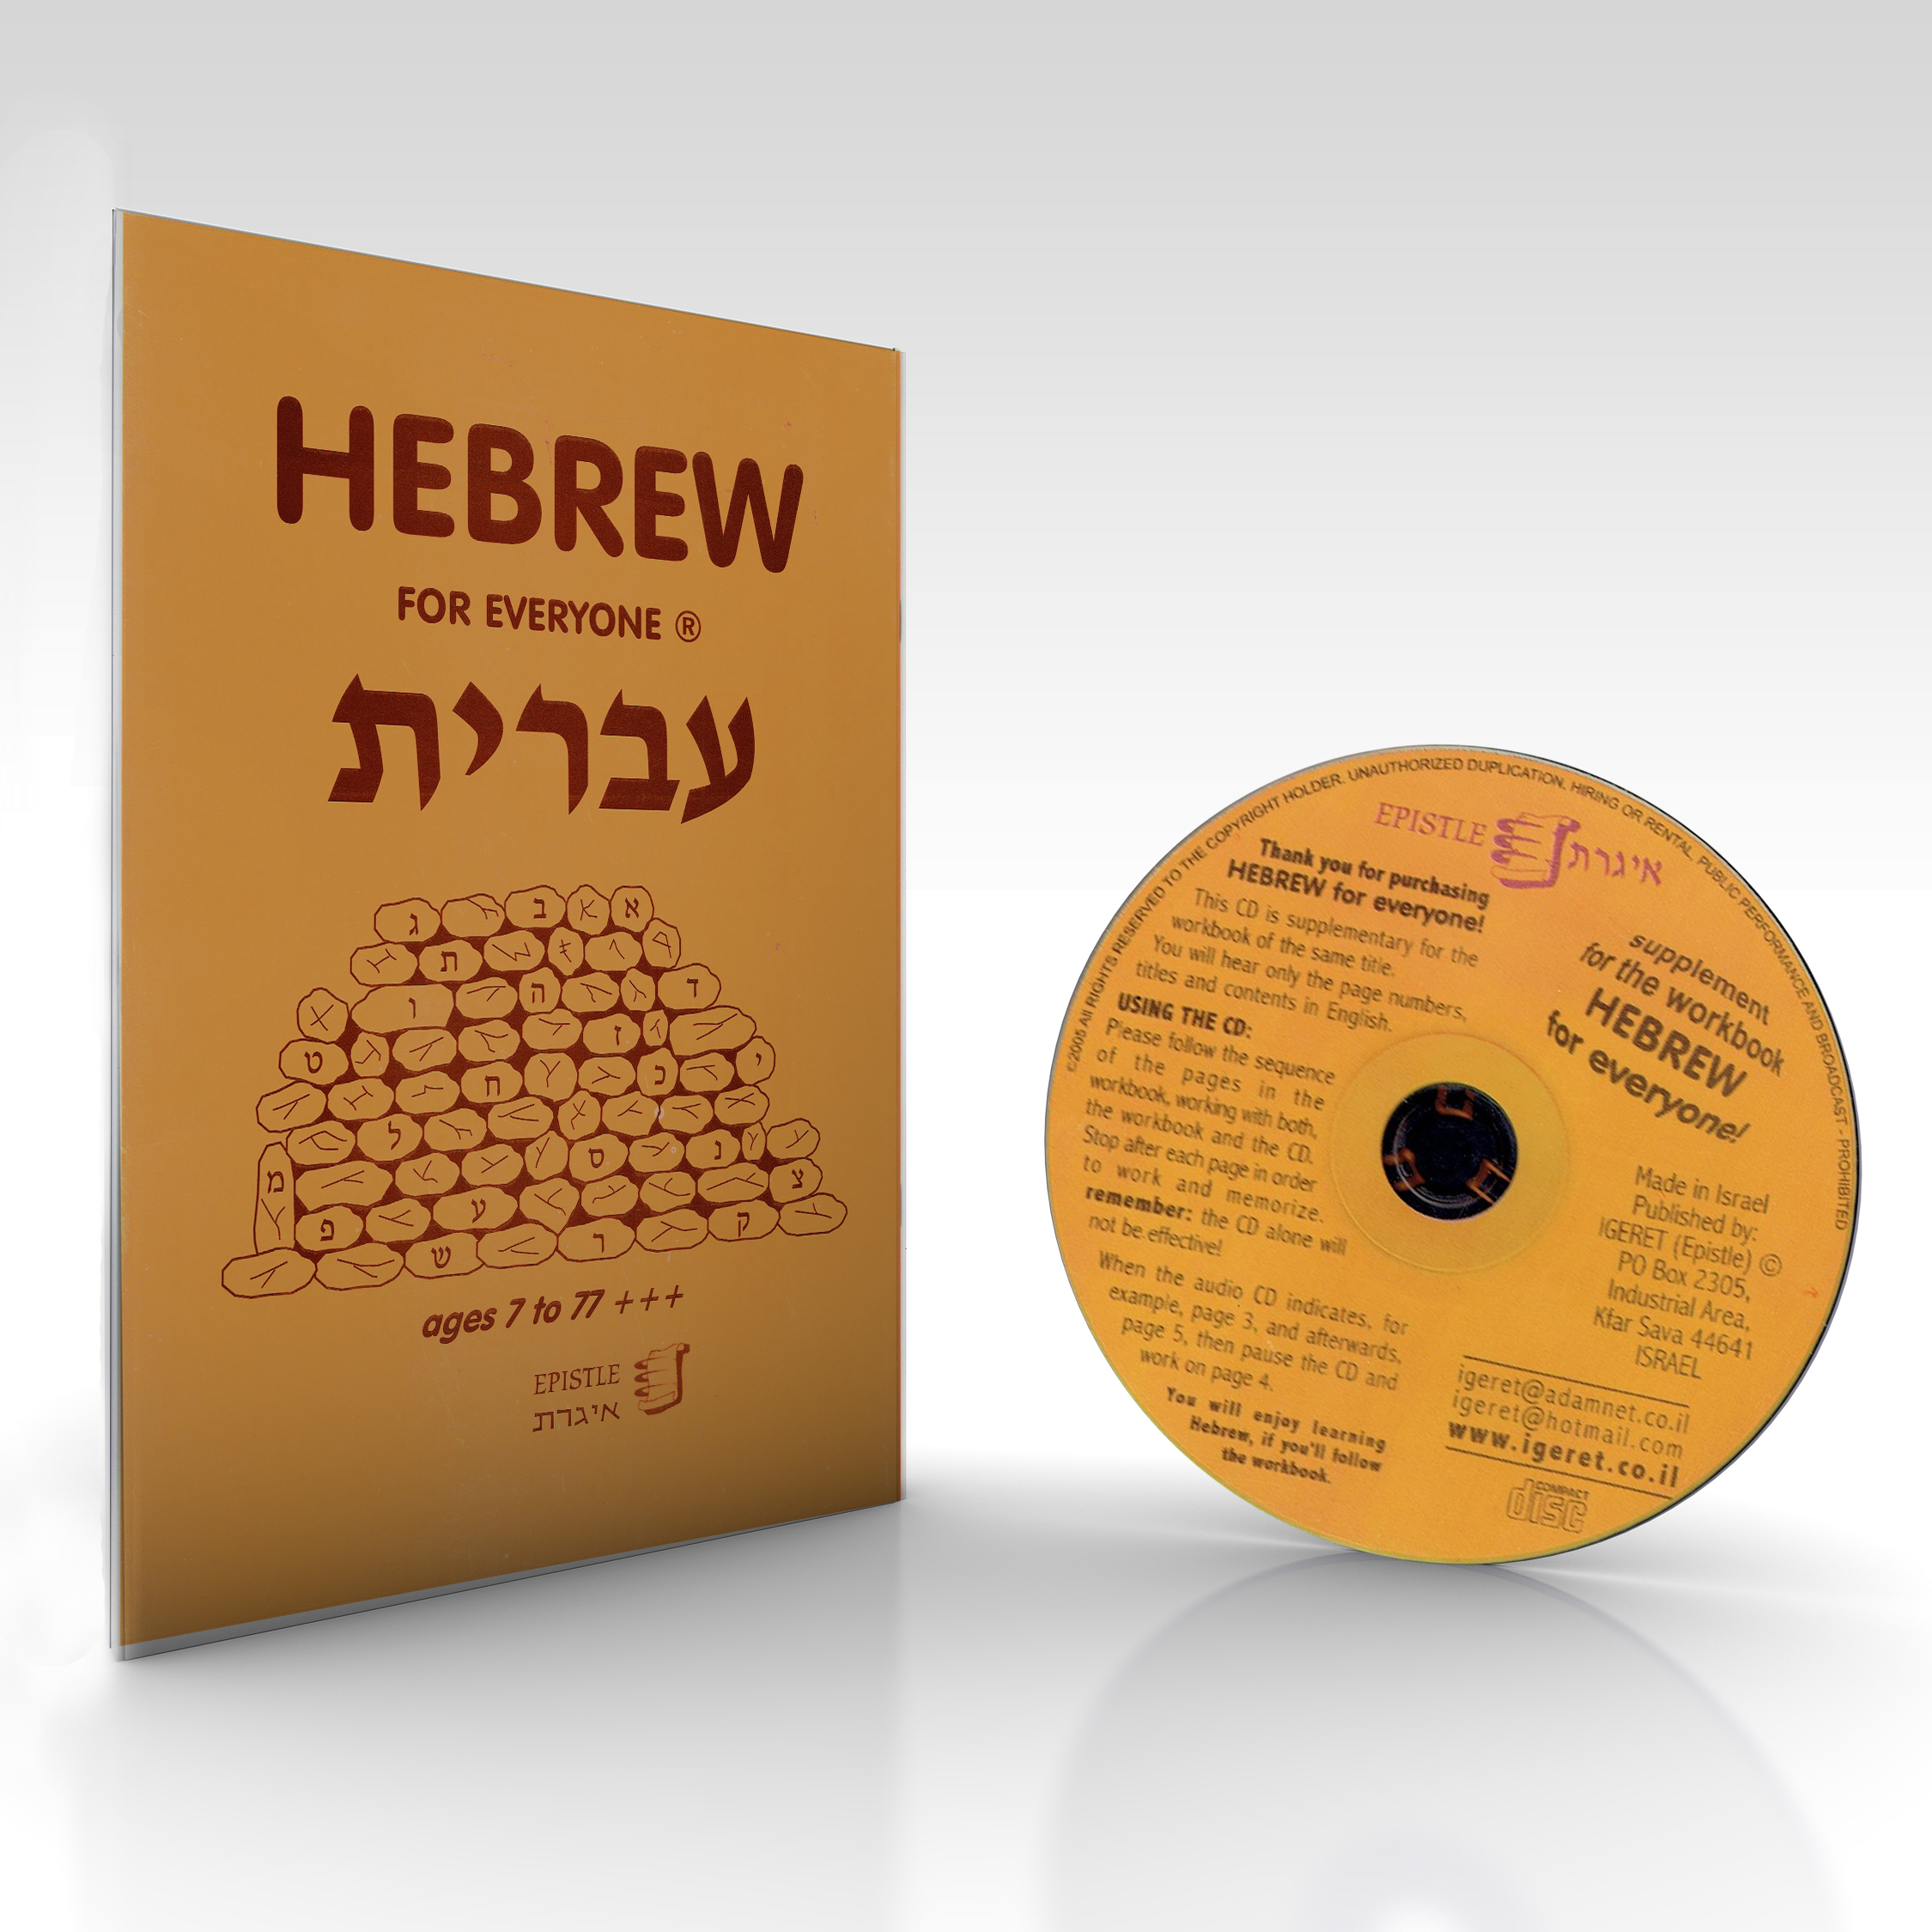 A learning manual to study modern hebrew with a cd around biblical theme. suggested price $25 or 22 euros including postage